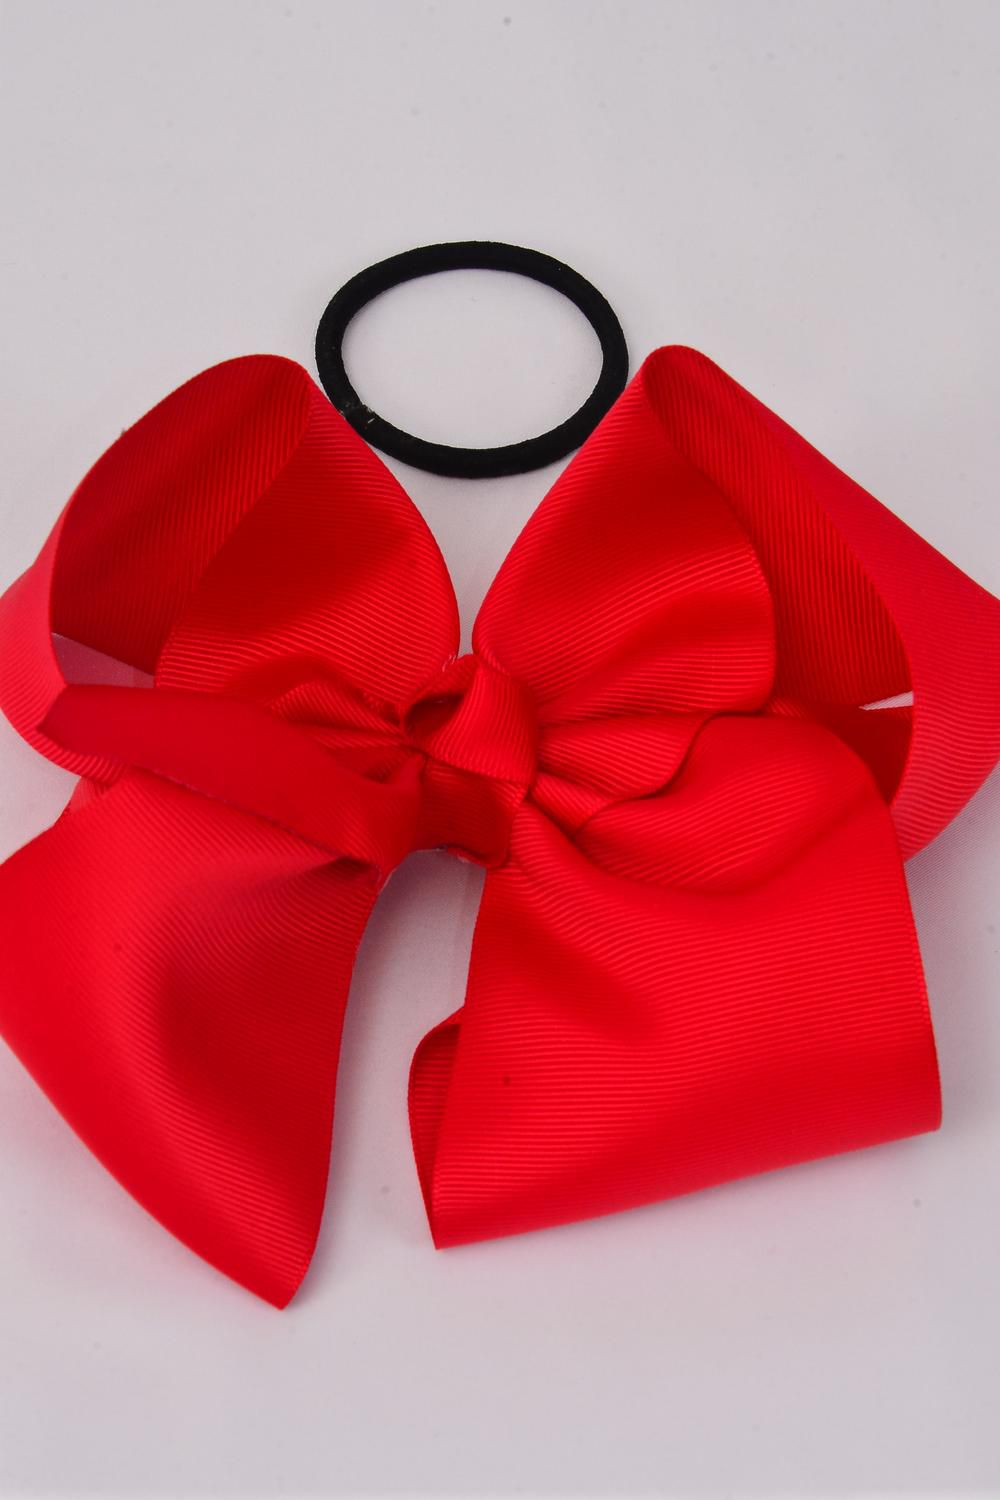 "Hair Bow Cheer Type Bow Red Elastic Pony Grosgrain Bow-tie/DZ **Red** Size-8""x 7"" Wide,Elastic Pony,W Clip Strip & UPC Code"